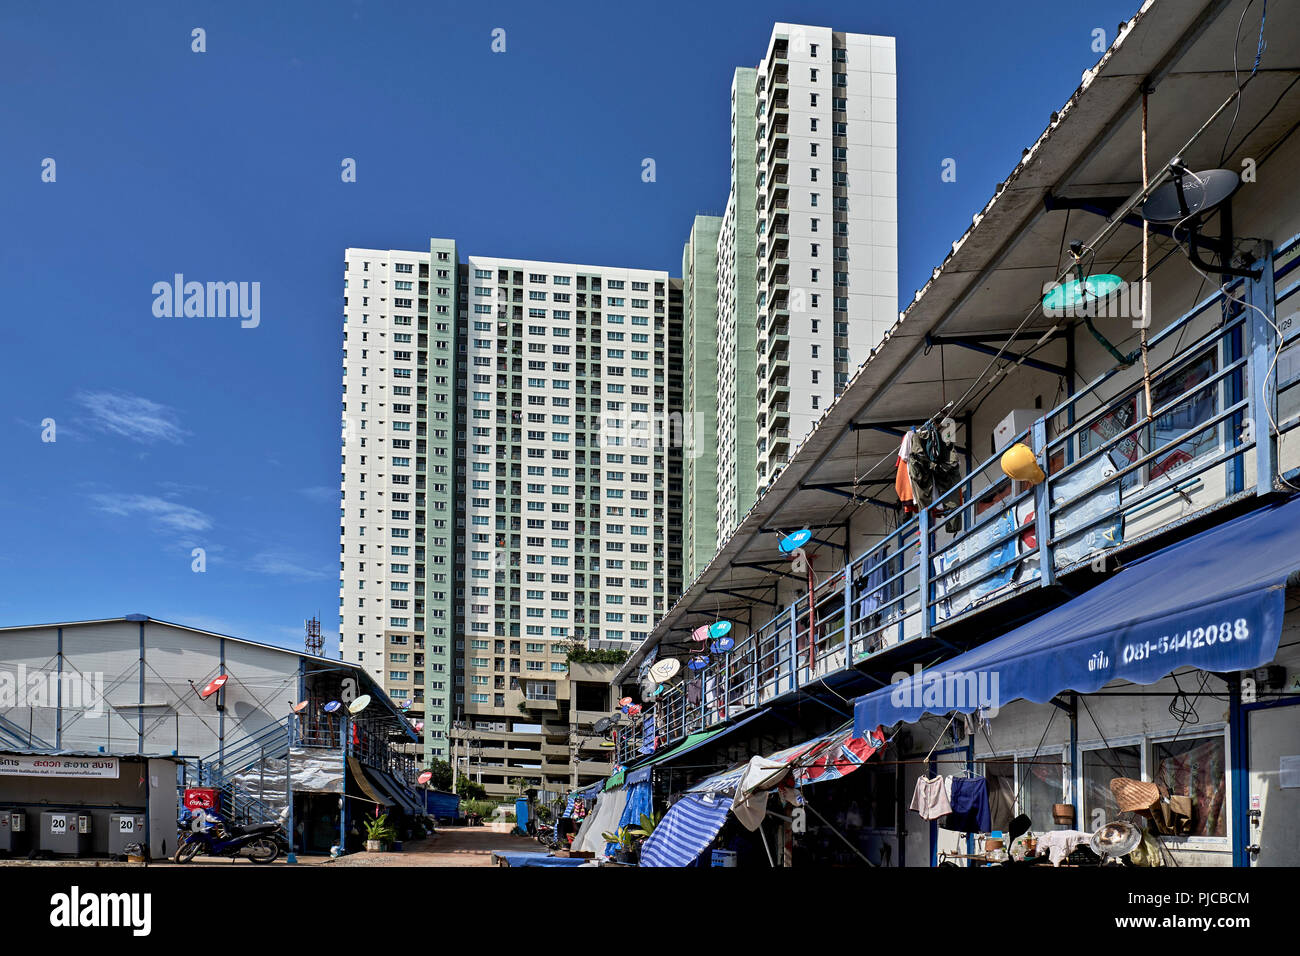 High rise modern apartment block contrasting against old style economy housing giving concept of new v old. Thailand Southeast Asia - Stock Image